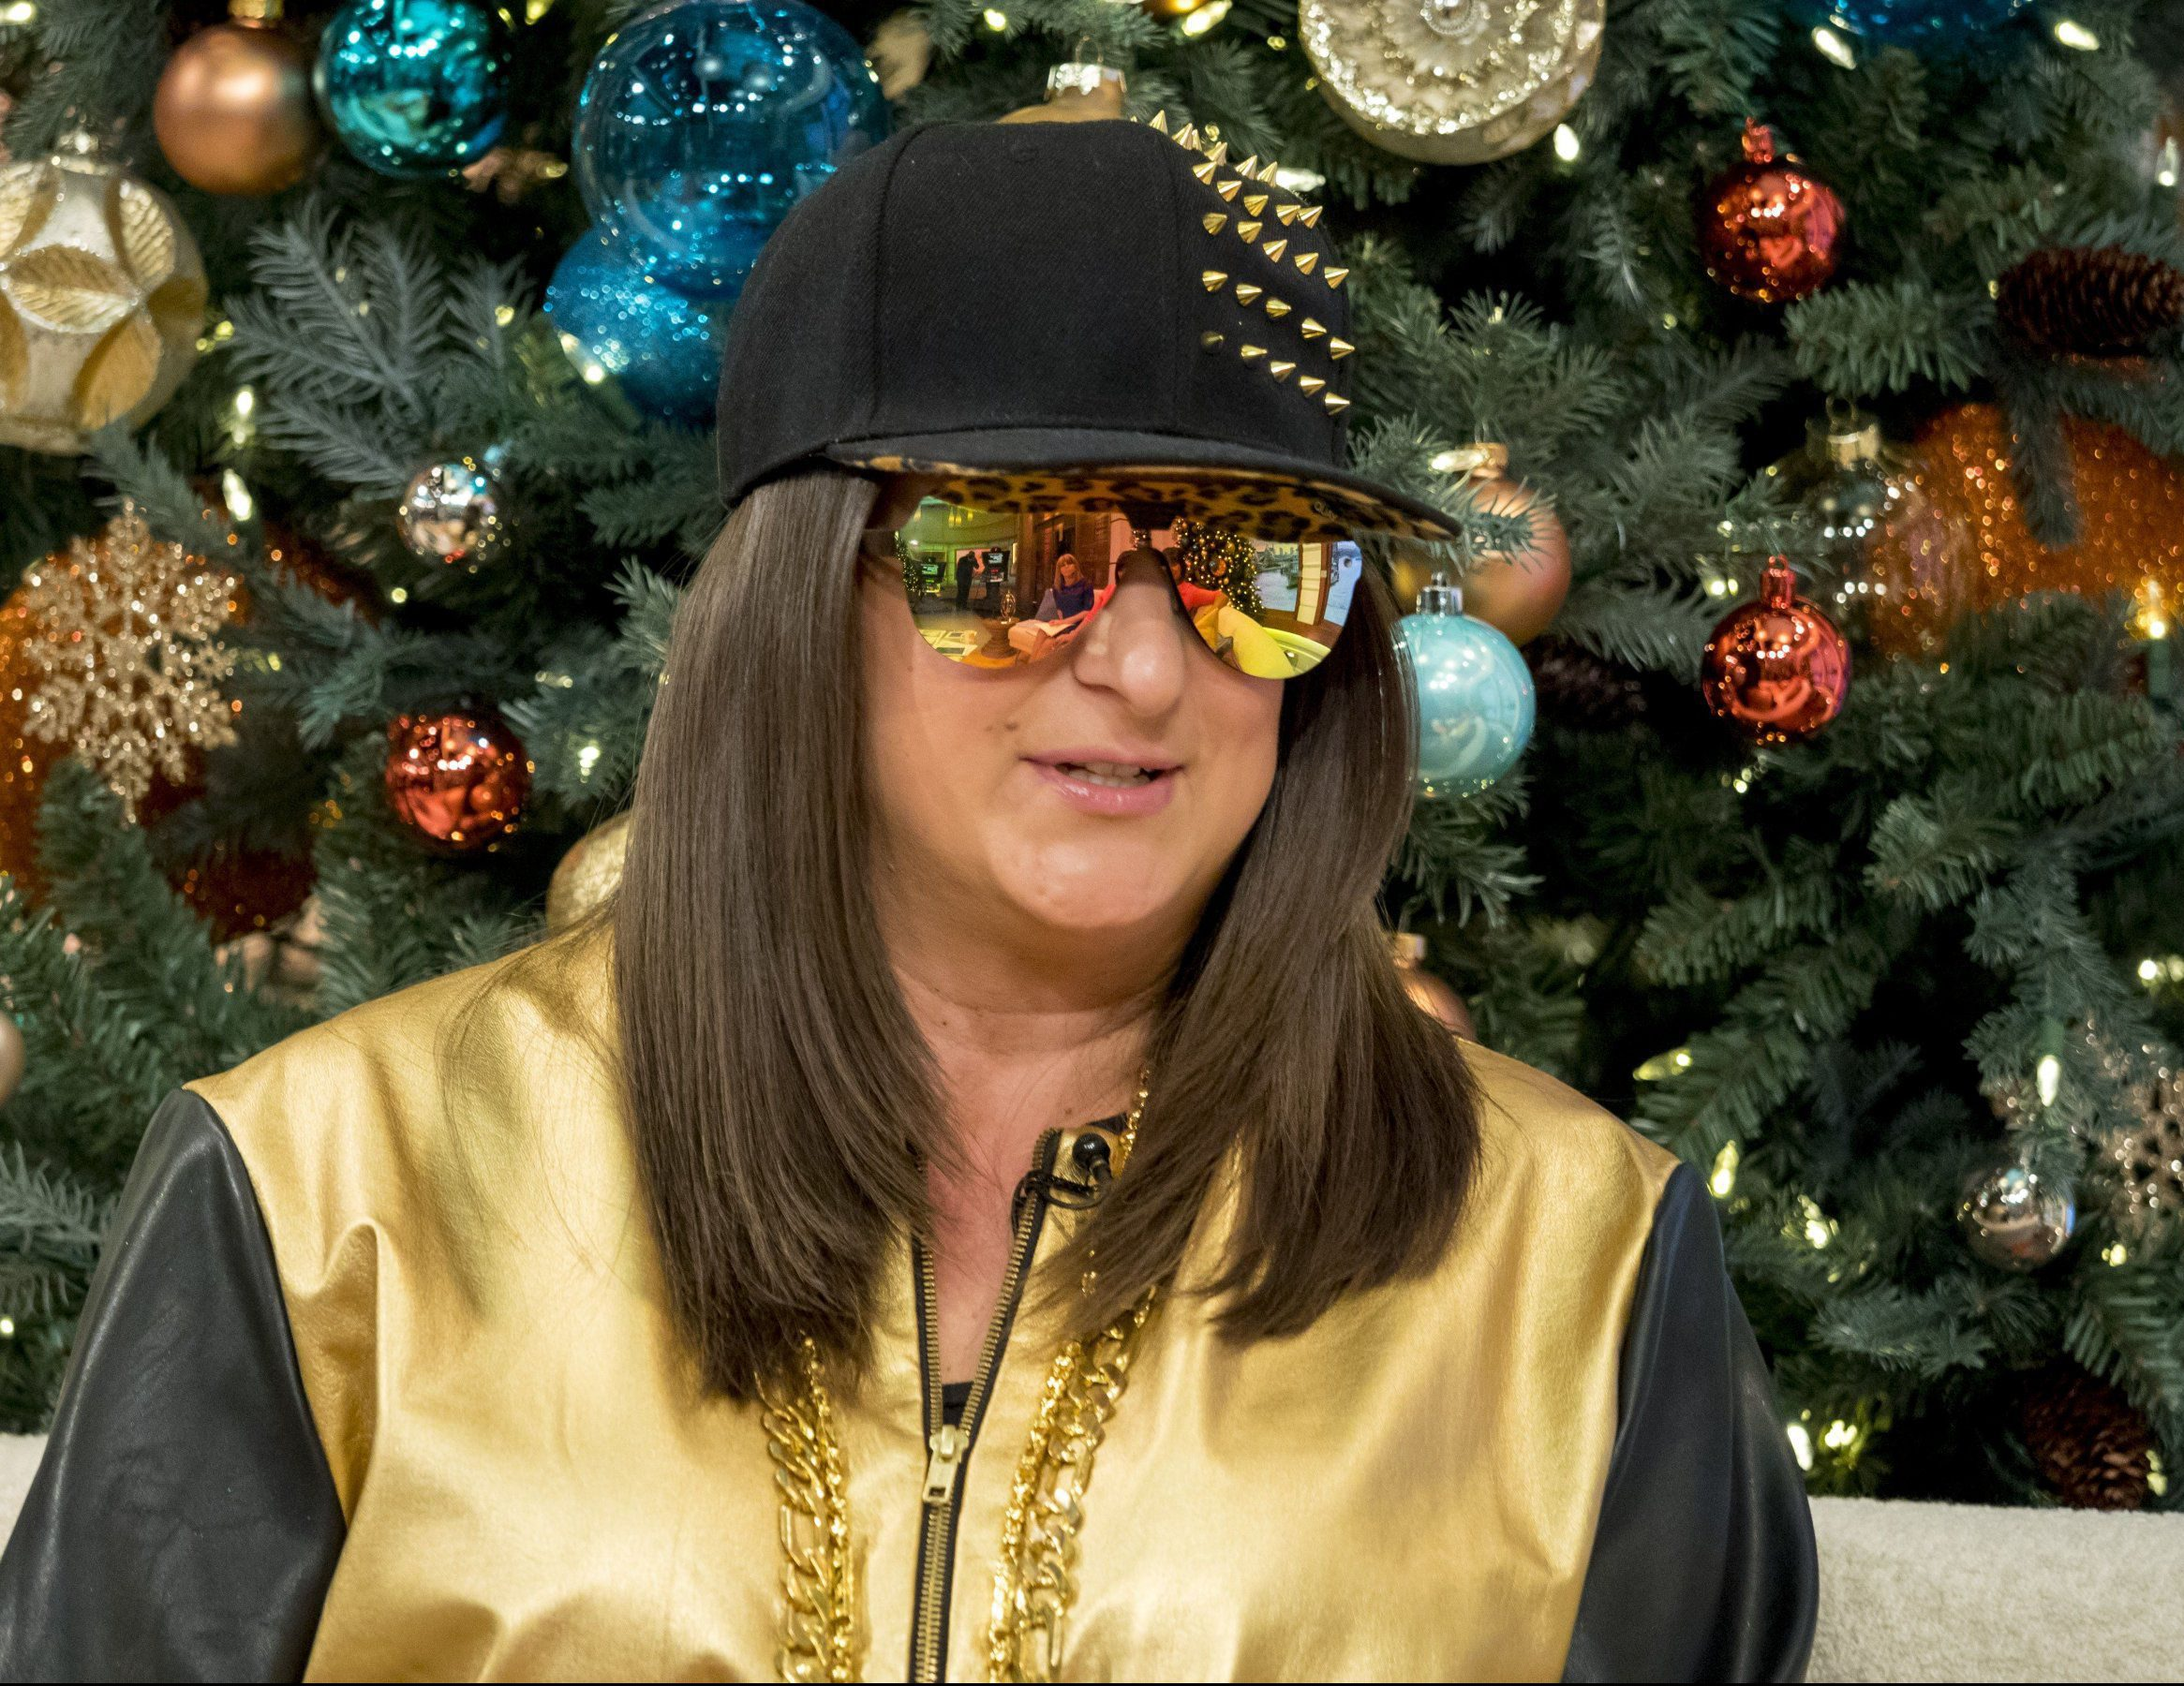 X Factor star Honey G reveals the one situation she'll take her glasses off